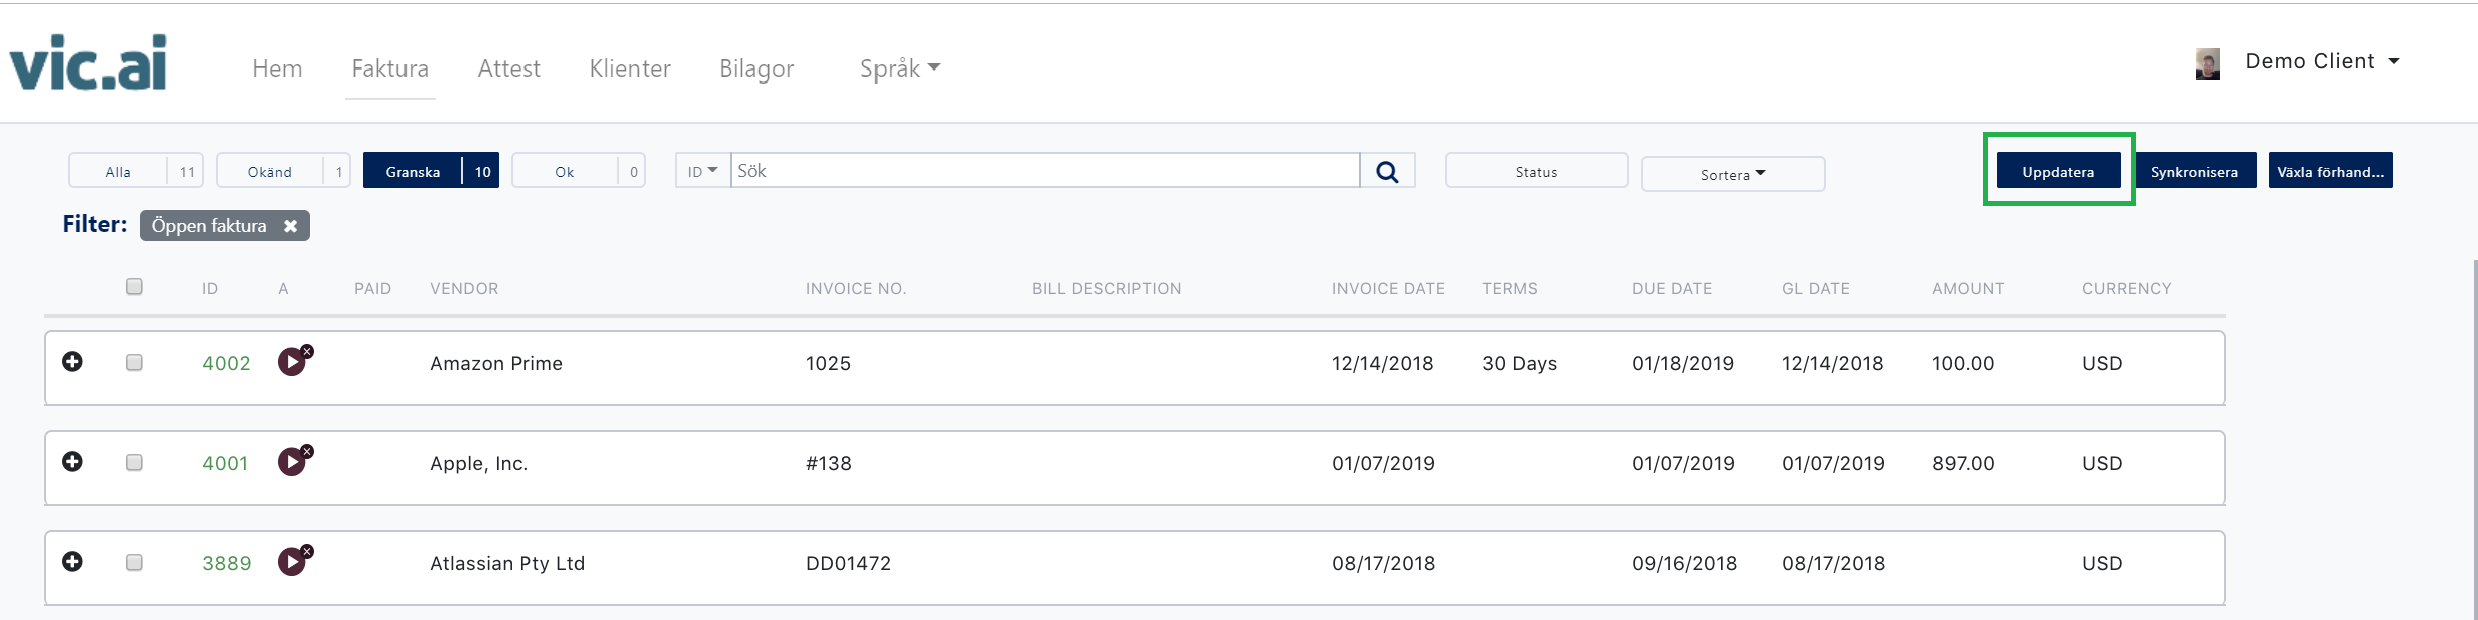 Vic_ai_Dashboard_Invoice_Overview_3.png